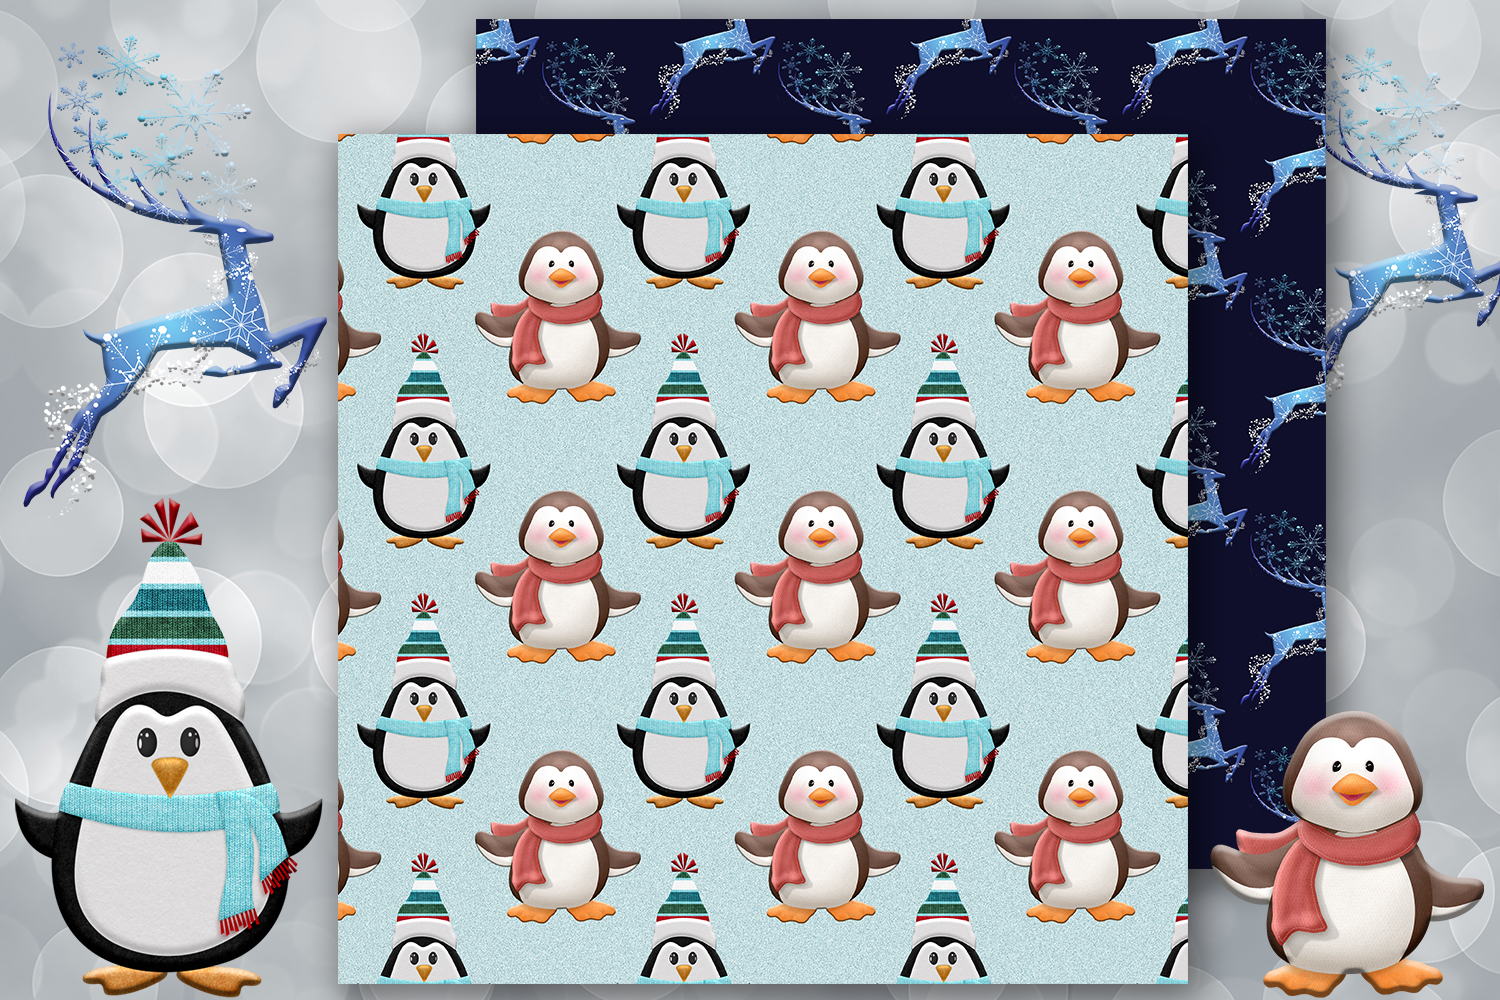 Snowy Winter, Penguin,Snowman,Snow, Ice, Frozen,BLACK FRIDAY example image 4